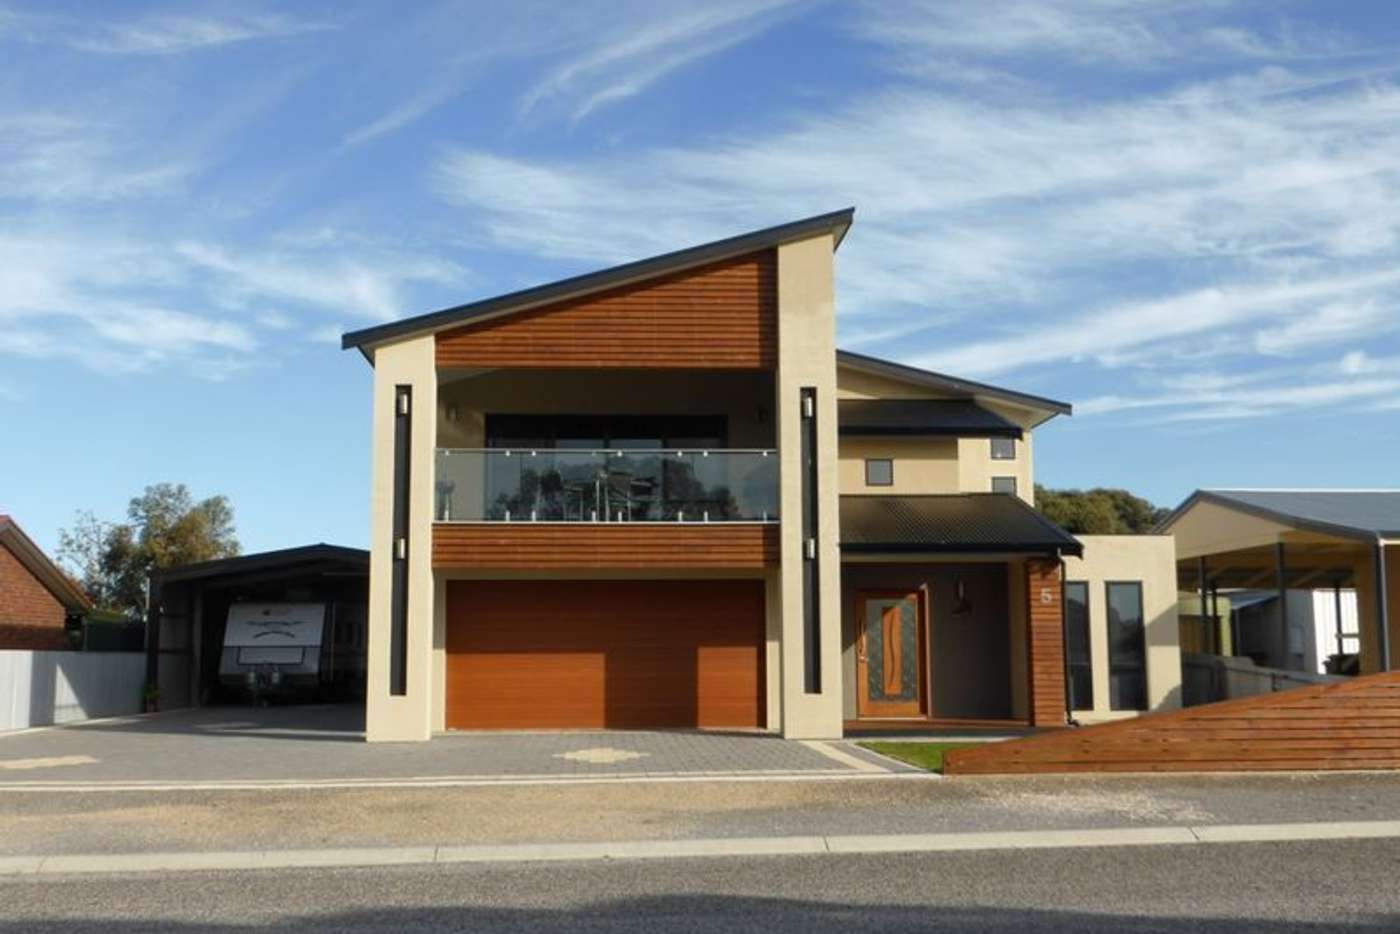 Main view of Homely house listing, 5 Fielding Street, Edithburgh SA 5583